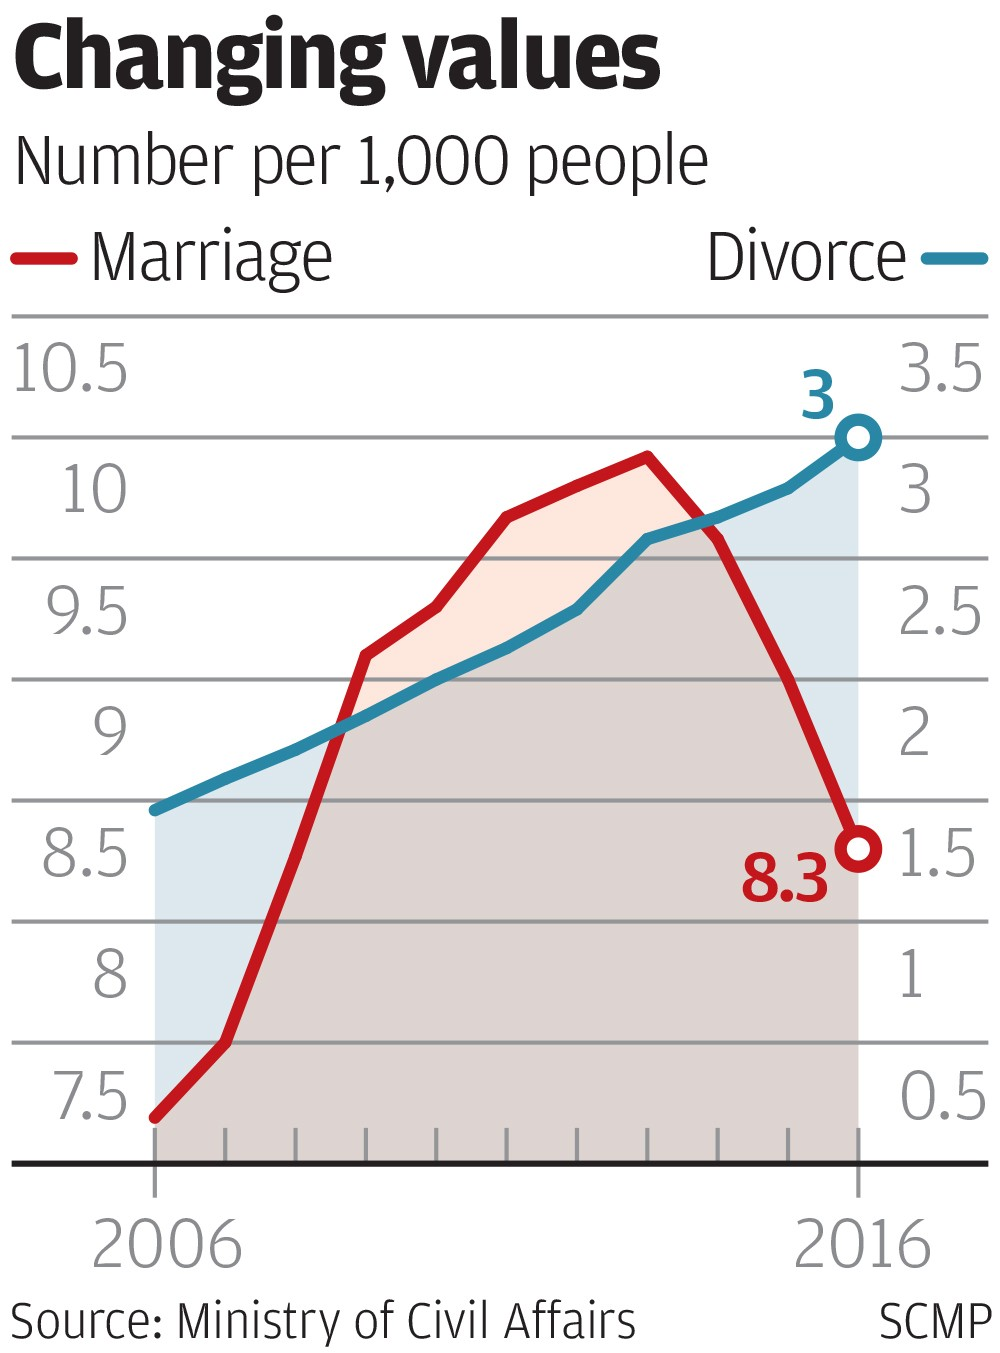 an analysis of divorce rate of marriage in last half of the century During the last half of the 20th century, divorce rates more than doubled, reaching a peak in the 1980s that has since declined only slightly.